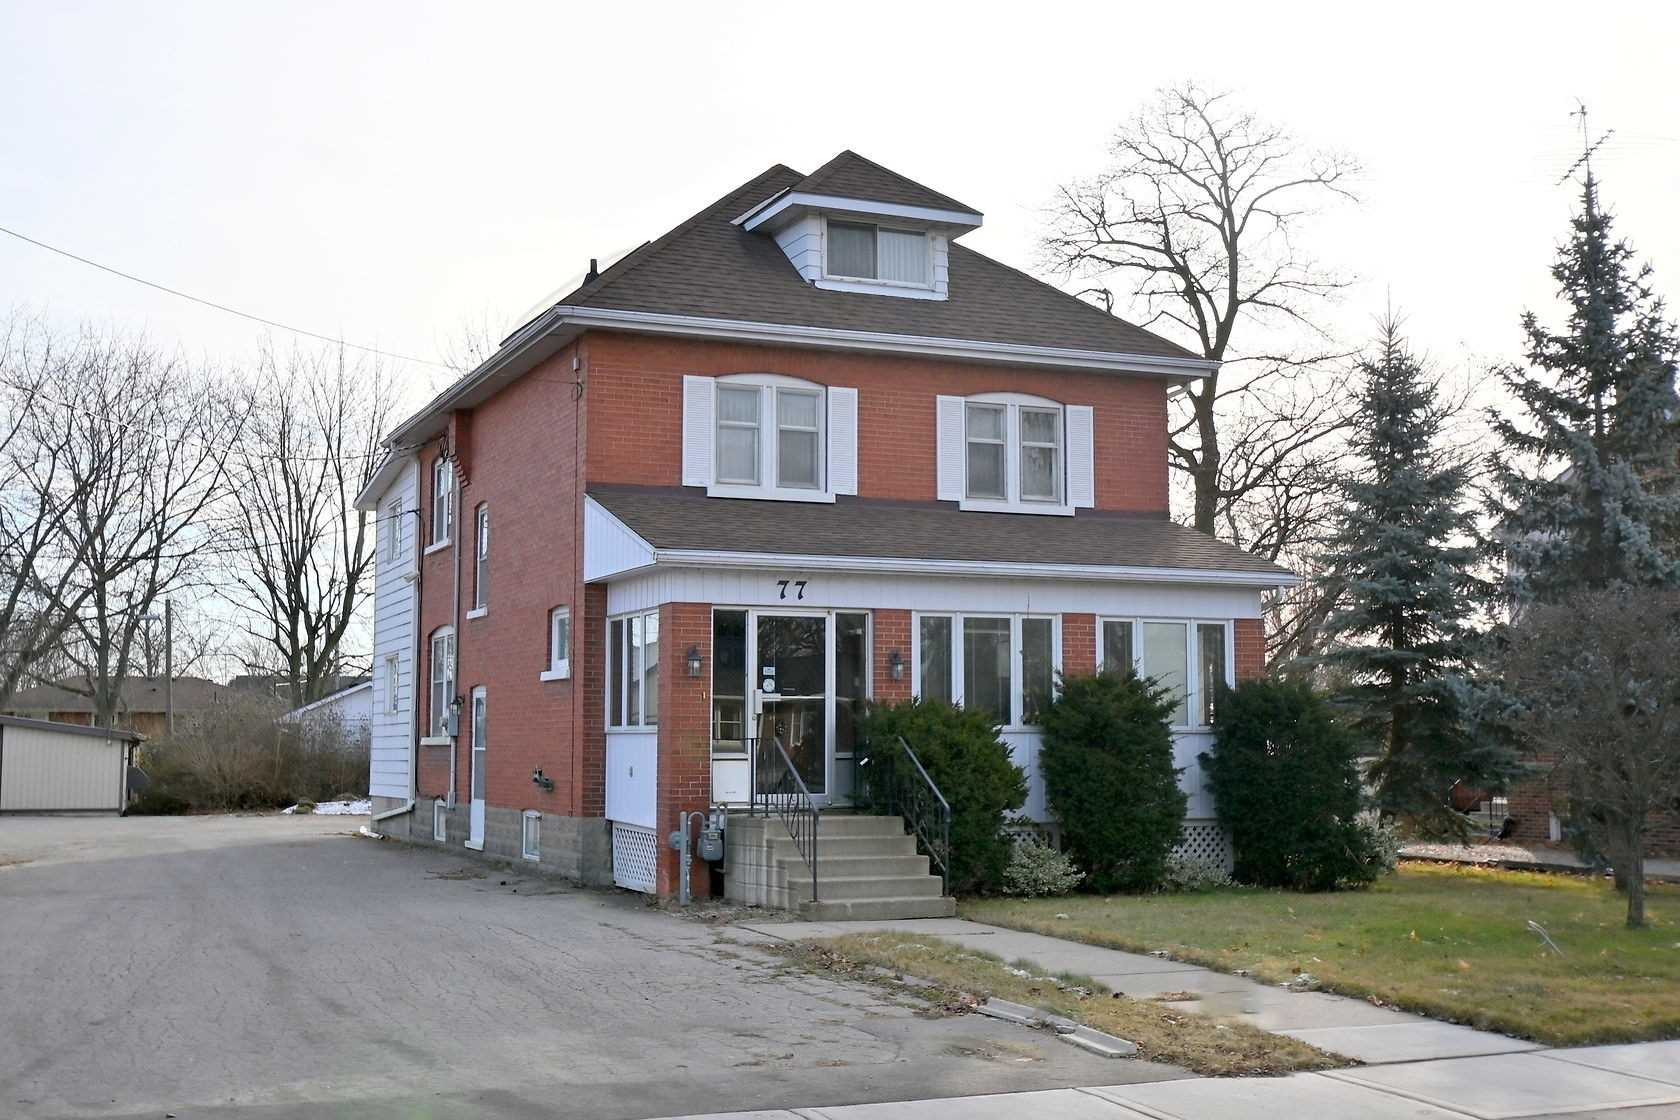 pictures of house for sale MLS: X4654394 located at 77 Main St S, Haldimand N0A1H0